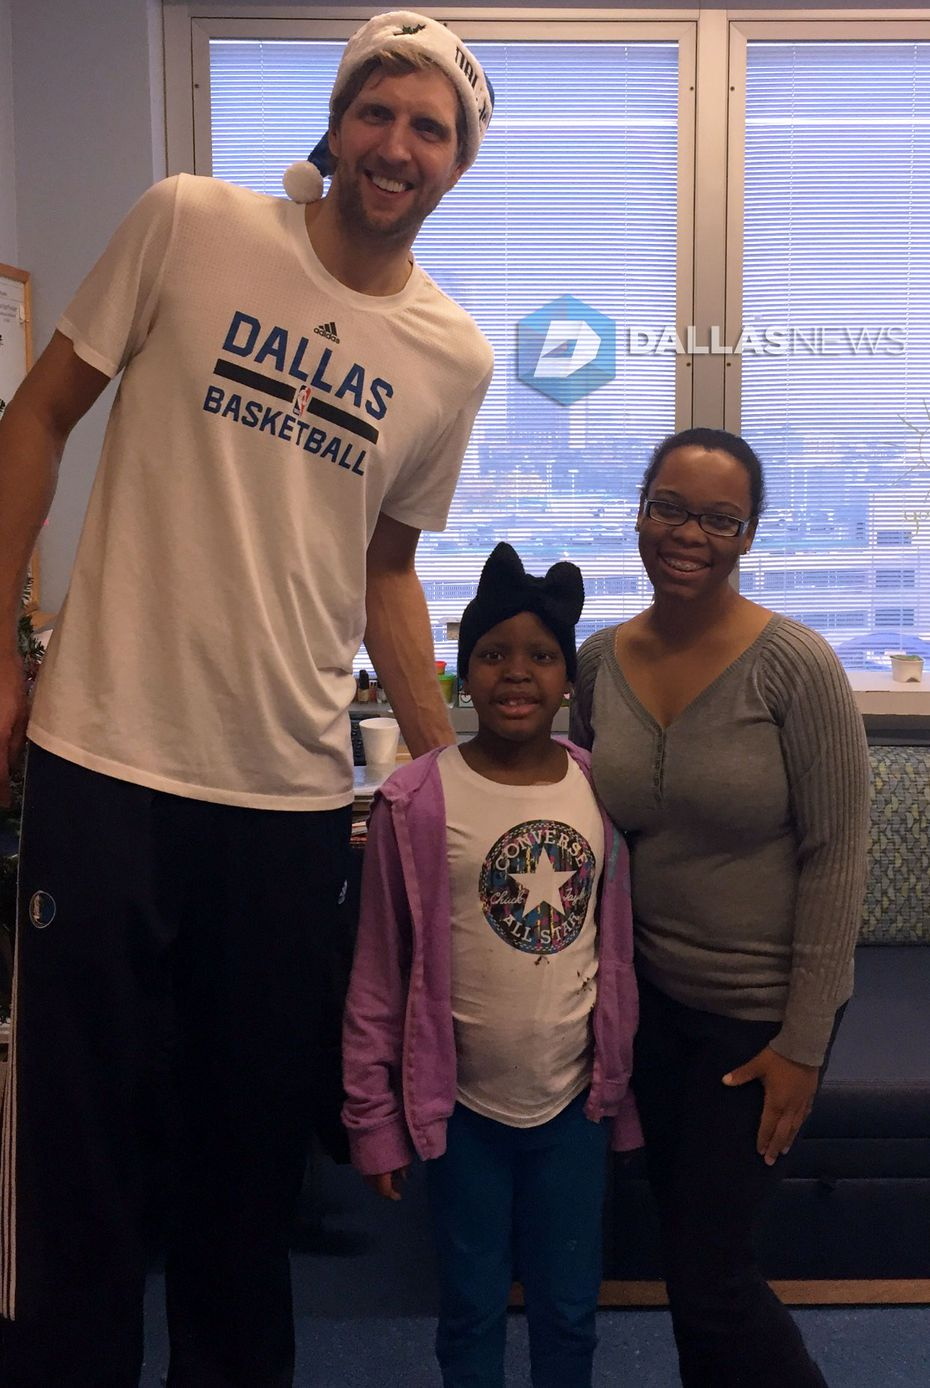 Dirk Nowitzki poses with patient Legecy Allen, 7, and her mother, Roseland Allen, at Children's Medical Center. Legecy, who marveled at Dirk's height when he visited her, has been hospitalized since Sept. 7.